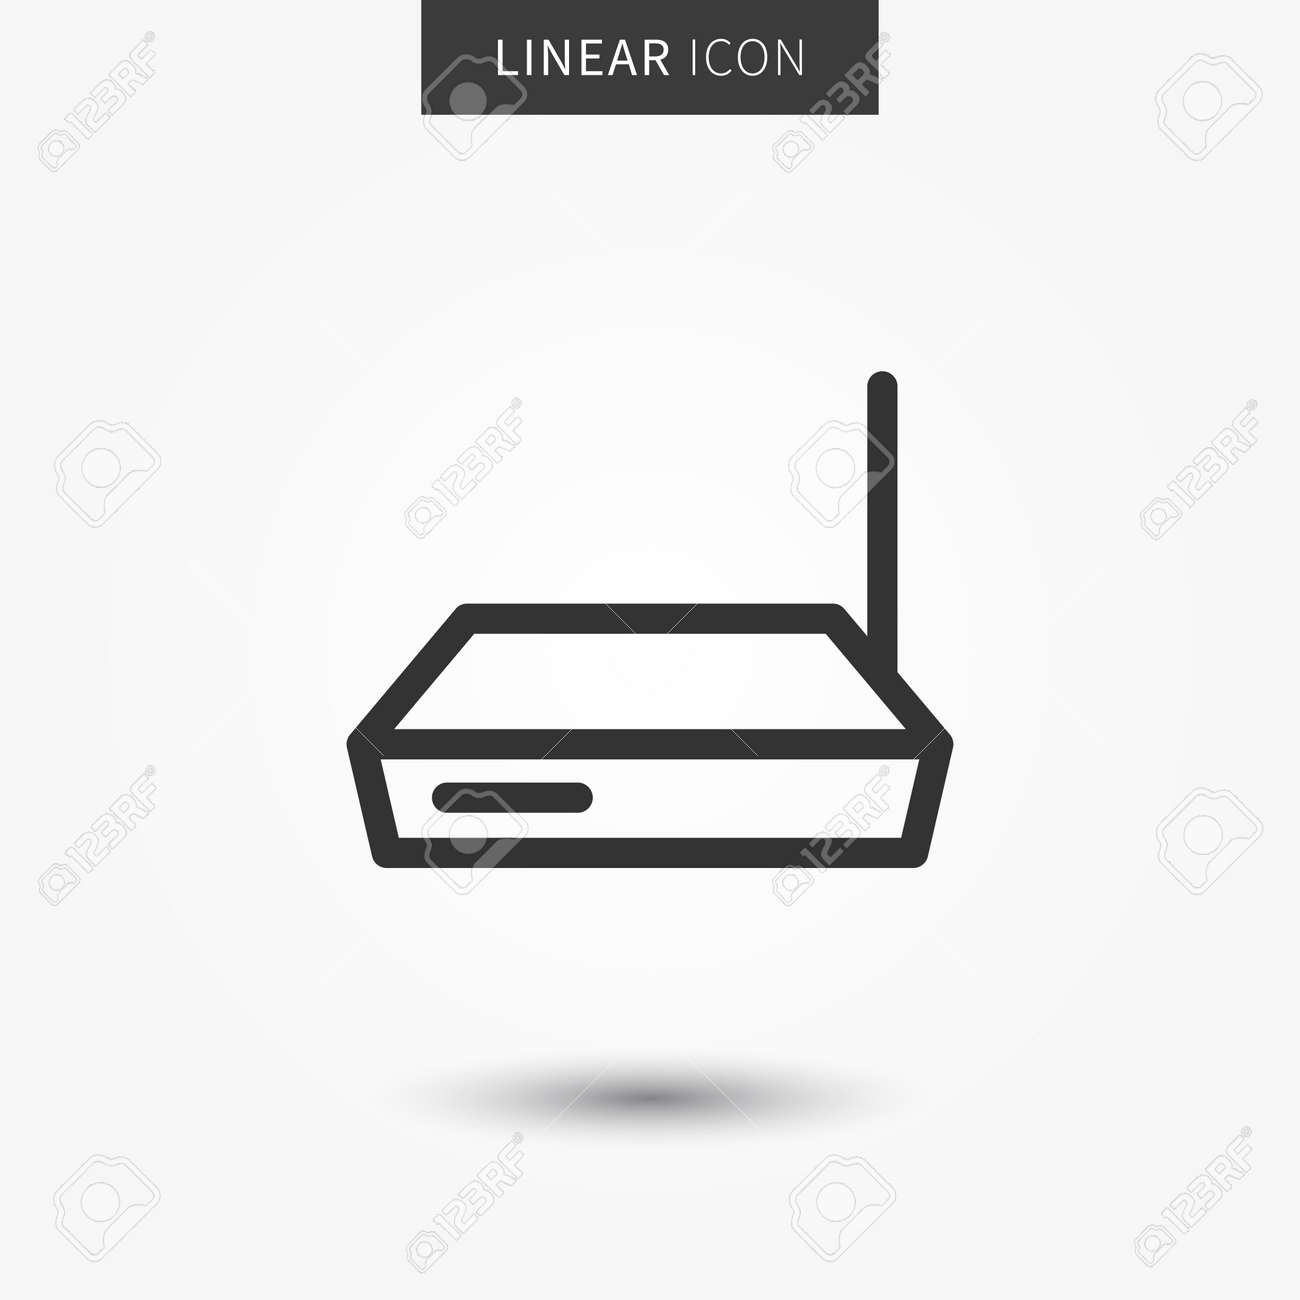 Router icon vector illustration  Isolated connection device symbol